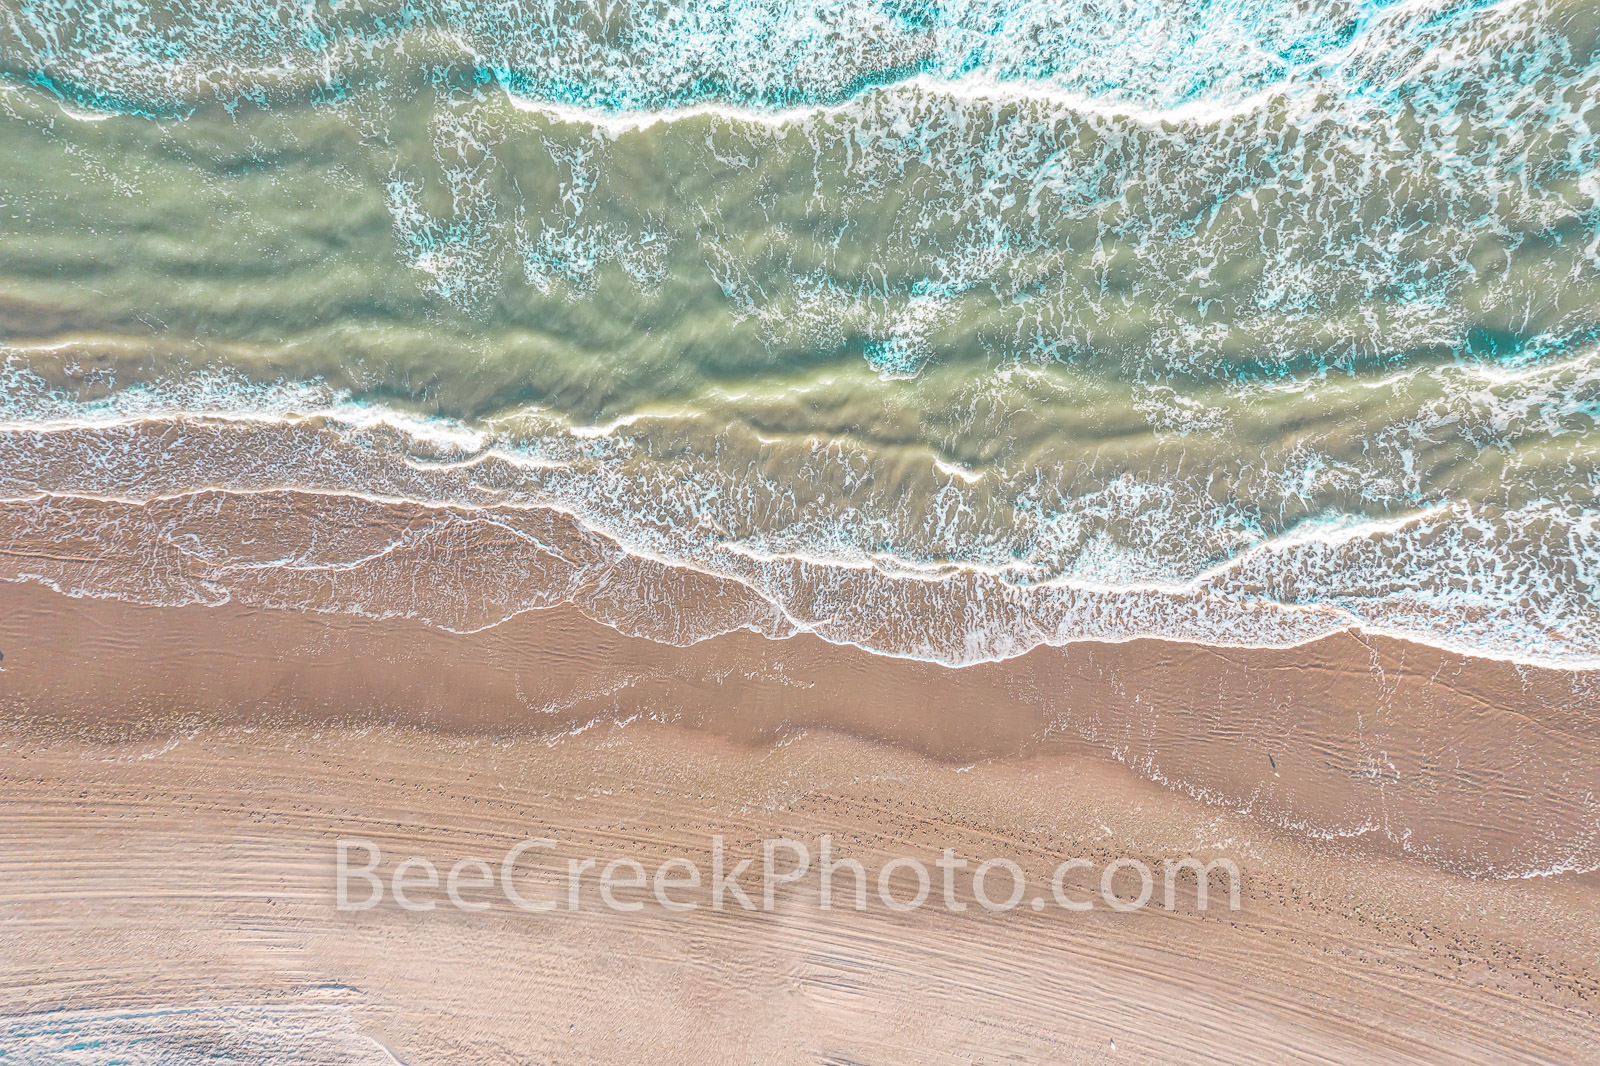 seascape, ocean, aerial, drone, surf, sand, water, coast, shoreline, abstract, beach, texture, coastal, nature, patterns, shore, morning, day, wave, waves, blue green, tide, shore, wind blown, pattern, photo